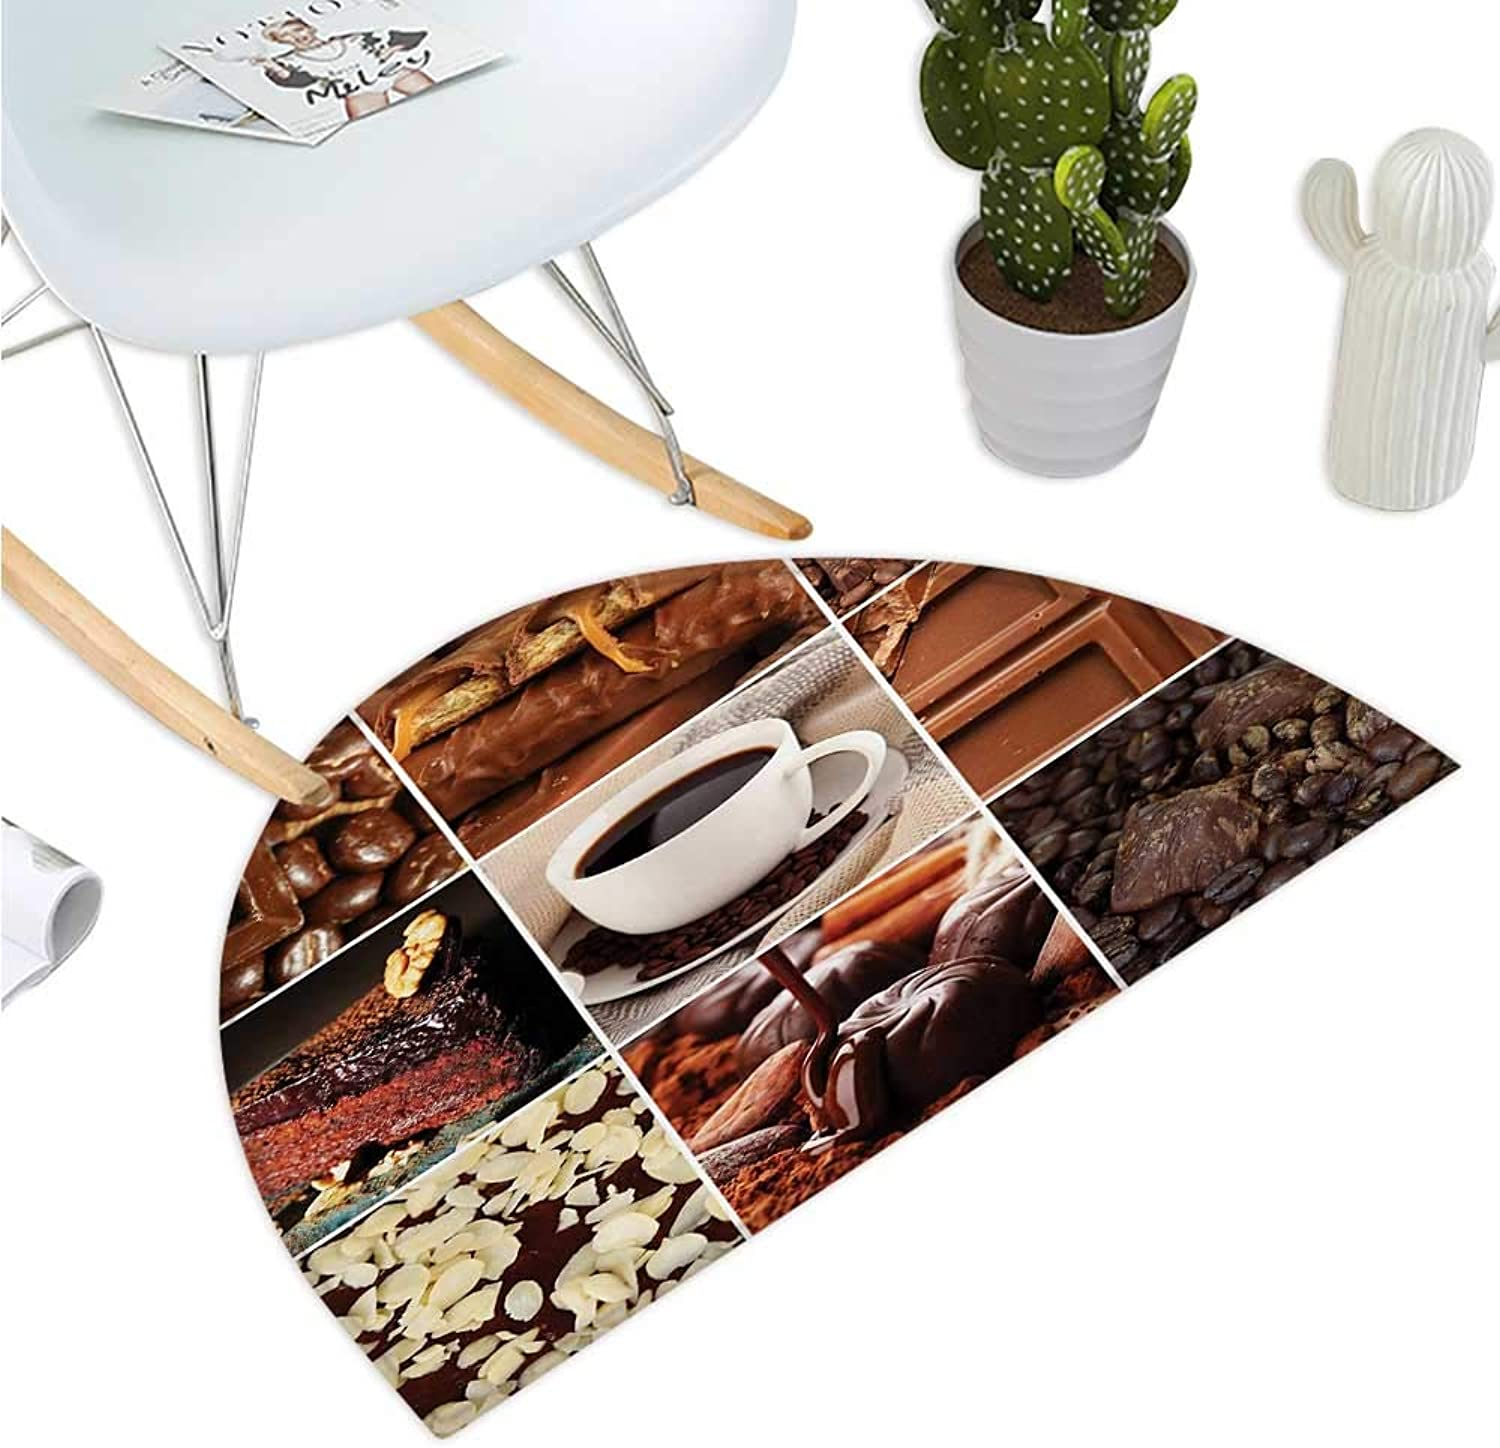 Brown Semicircle Doormat Coffee and Chocolate Tasty Collage Beans Mugs Snacks Pastries Espresso Cocoa Composition Entry Door Mat H 43.3  xD 64.9  Brown